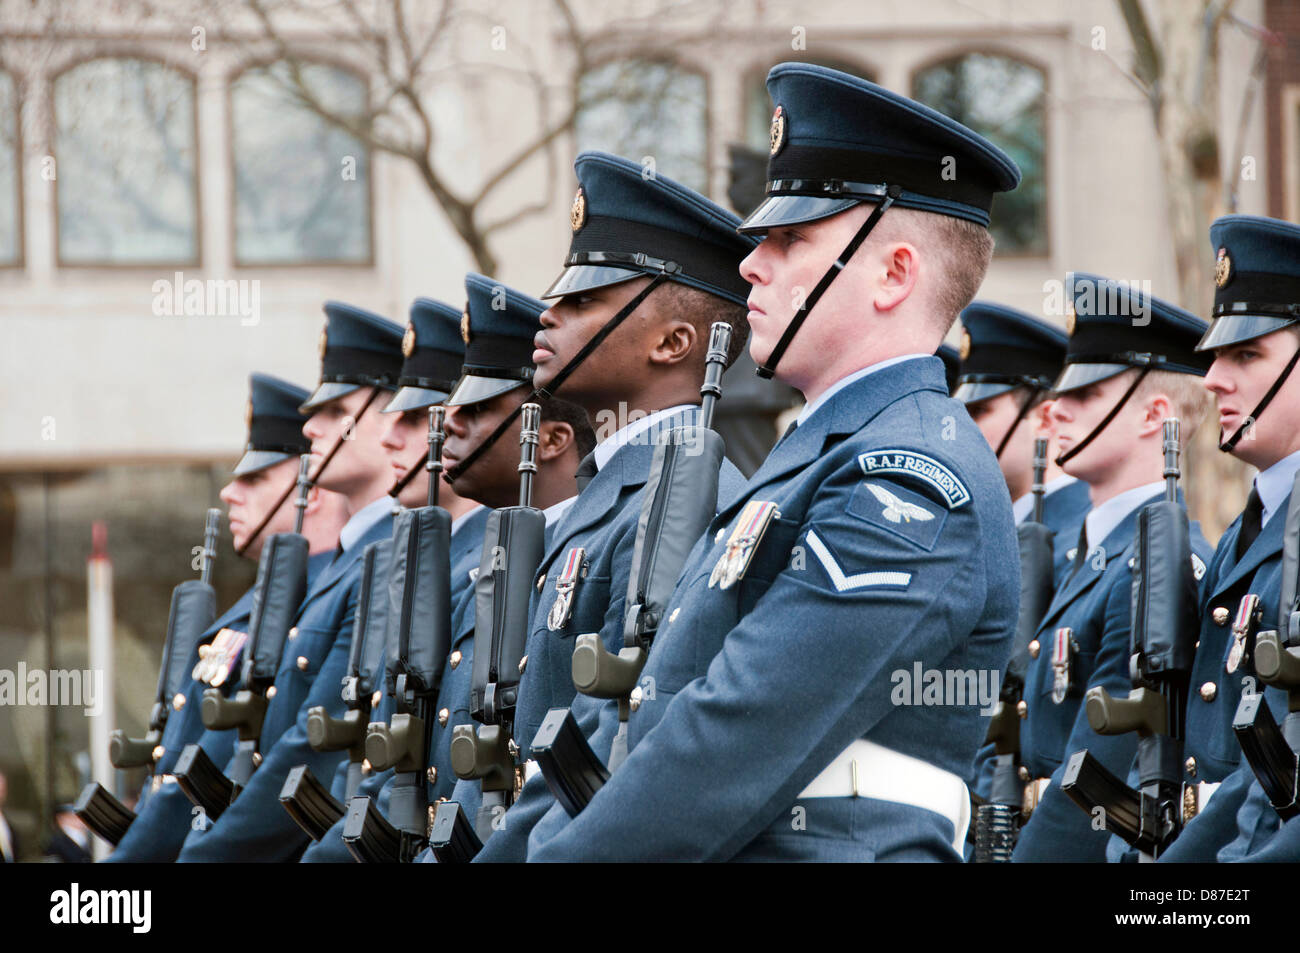 RAF soldiers marching through central London at Margaret Thatchers funeral - Stock Image